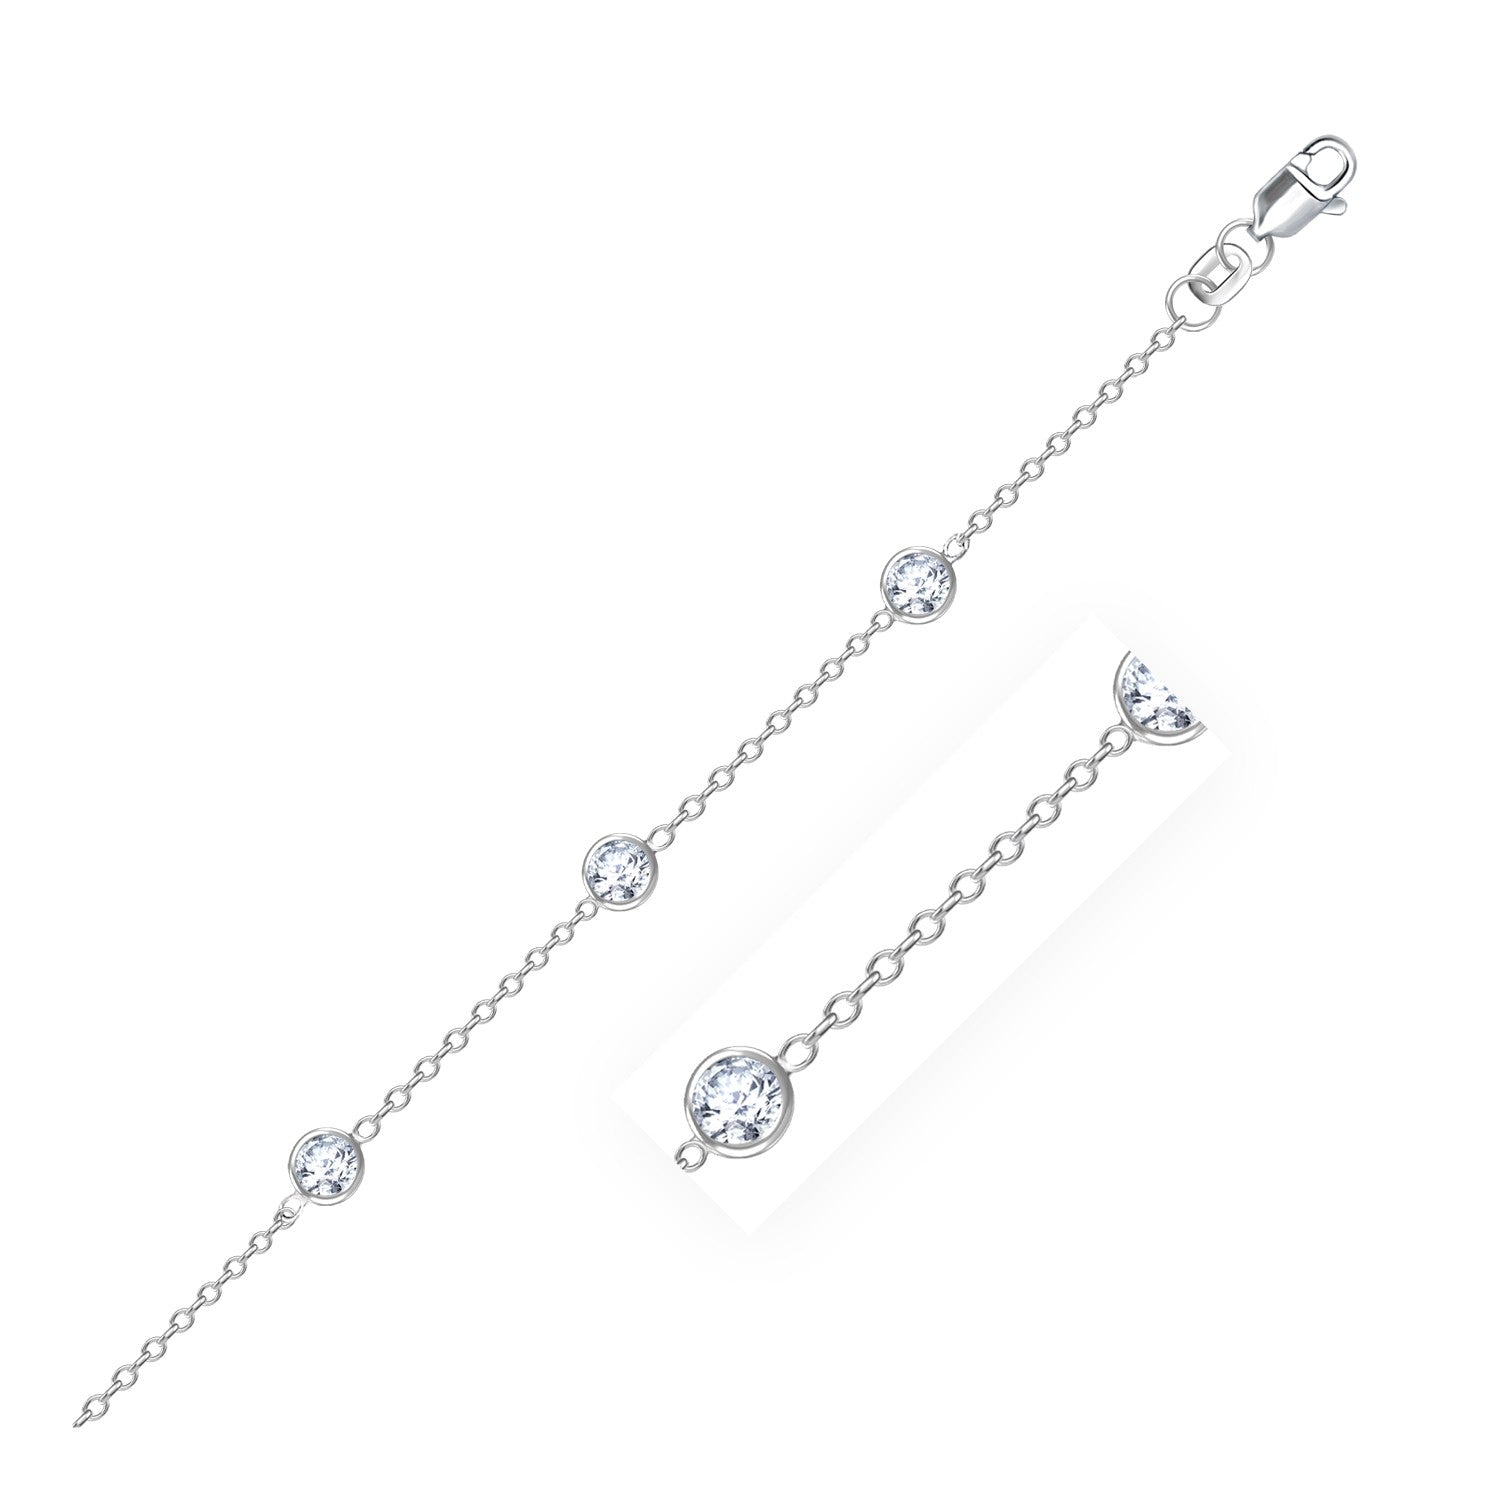 14K White Gold Anklet with Round White Cubic Zirconia - Uniquepedia.com